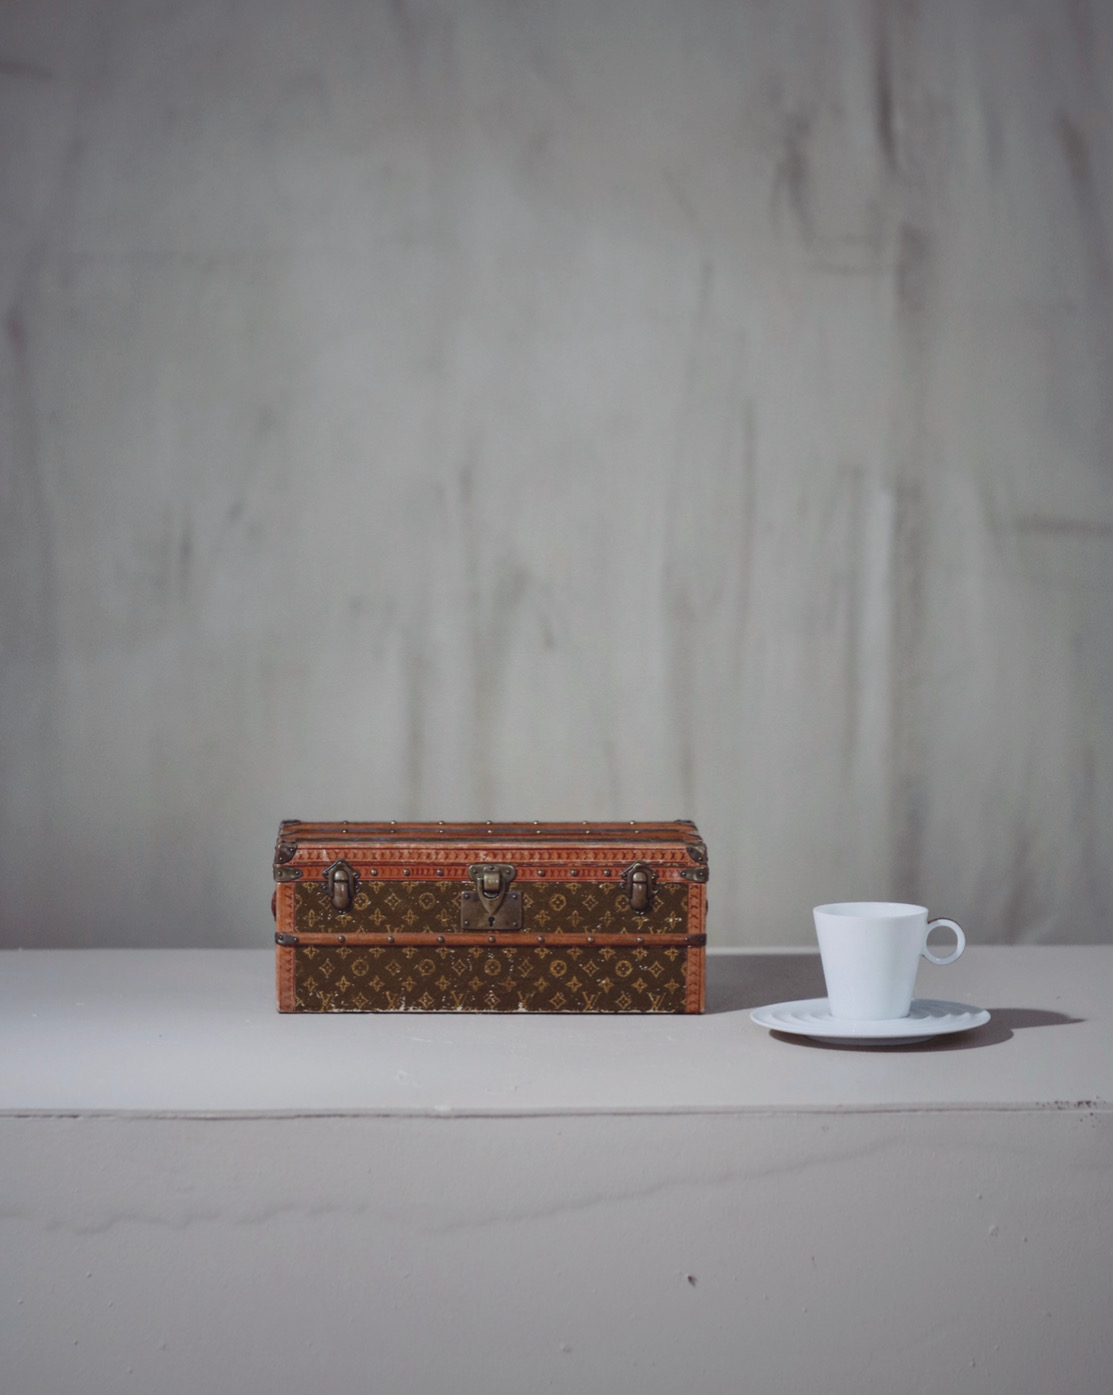 -traveled-trunk-louis-vuitton-thumbnail-product-5723-10